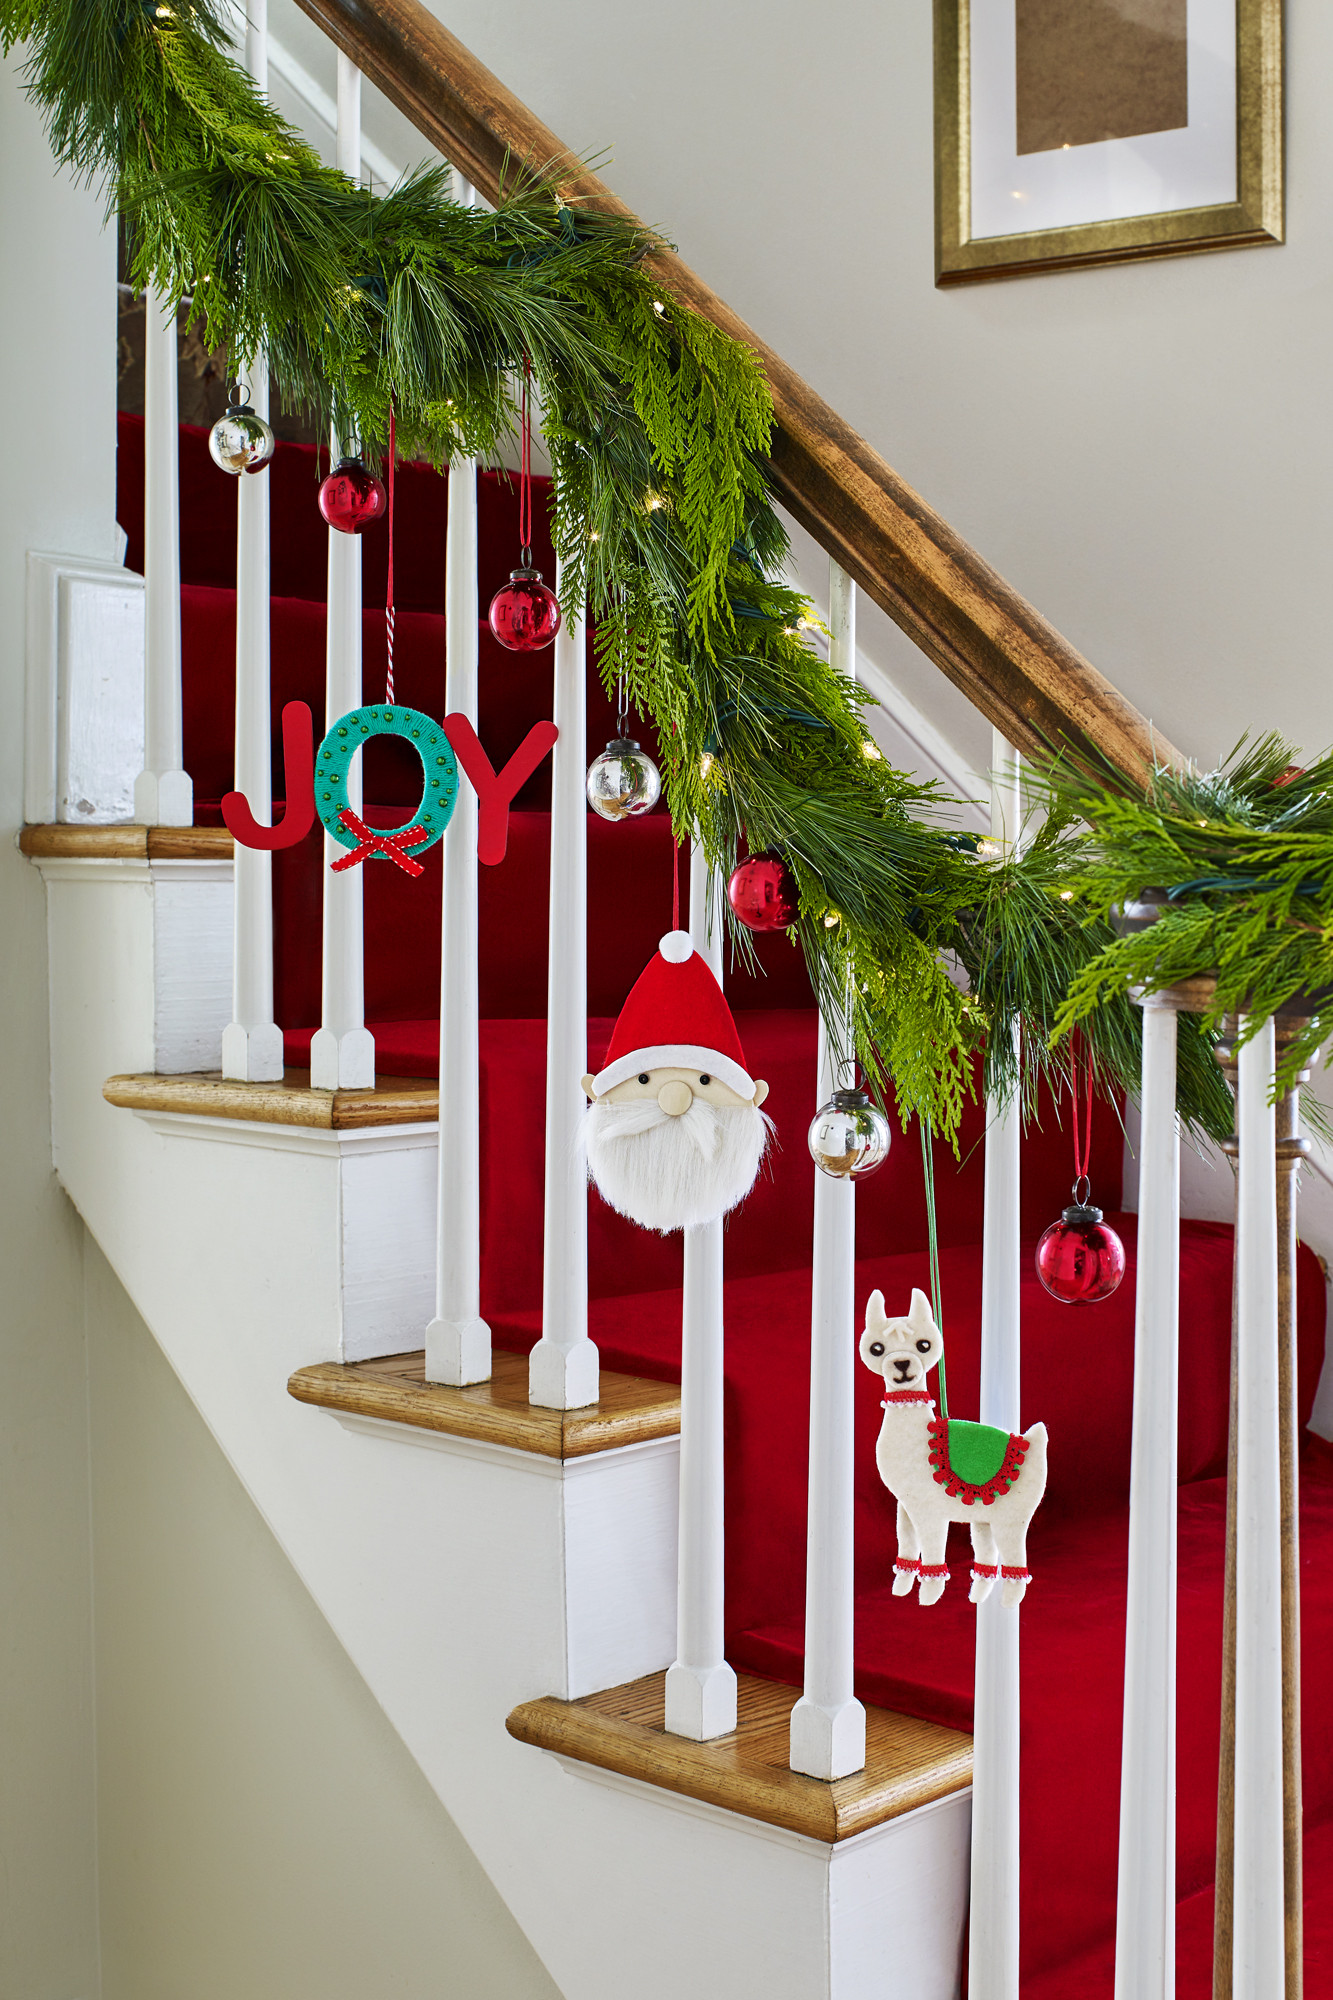 Best ideas about Christmas DIY Decorations . Save or Pin 32 Homemade DIY Christmas Ornament Craft Ideas How To Now.